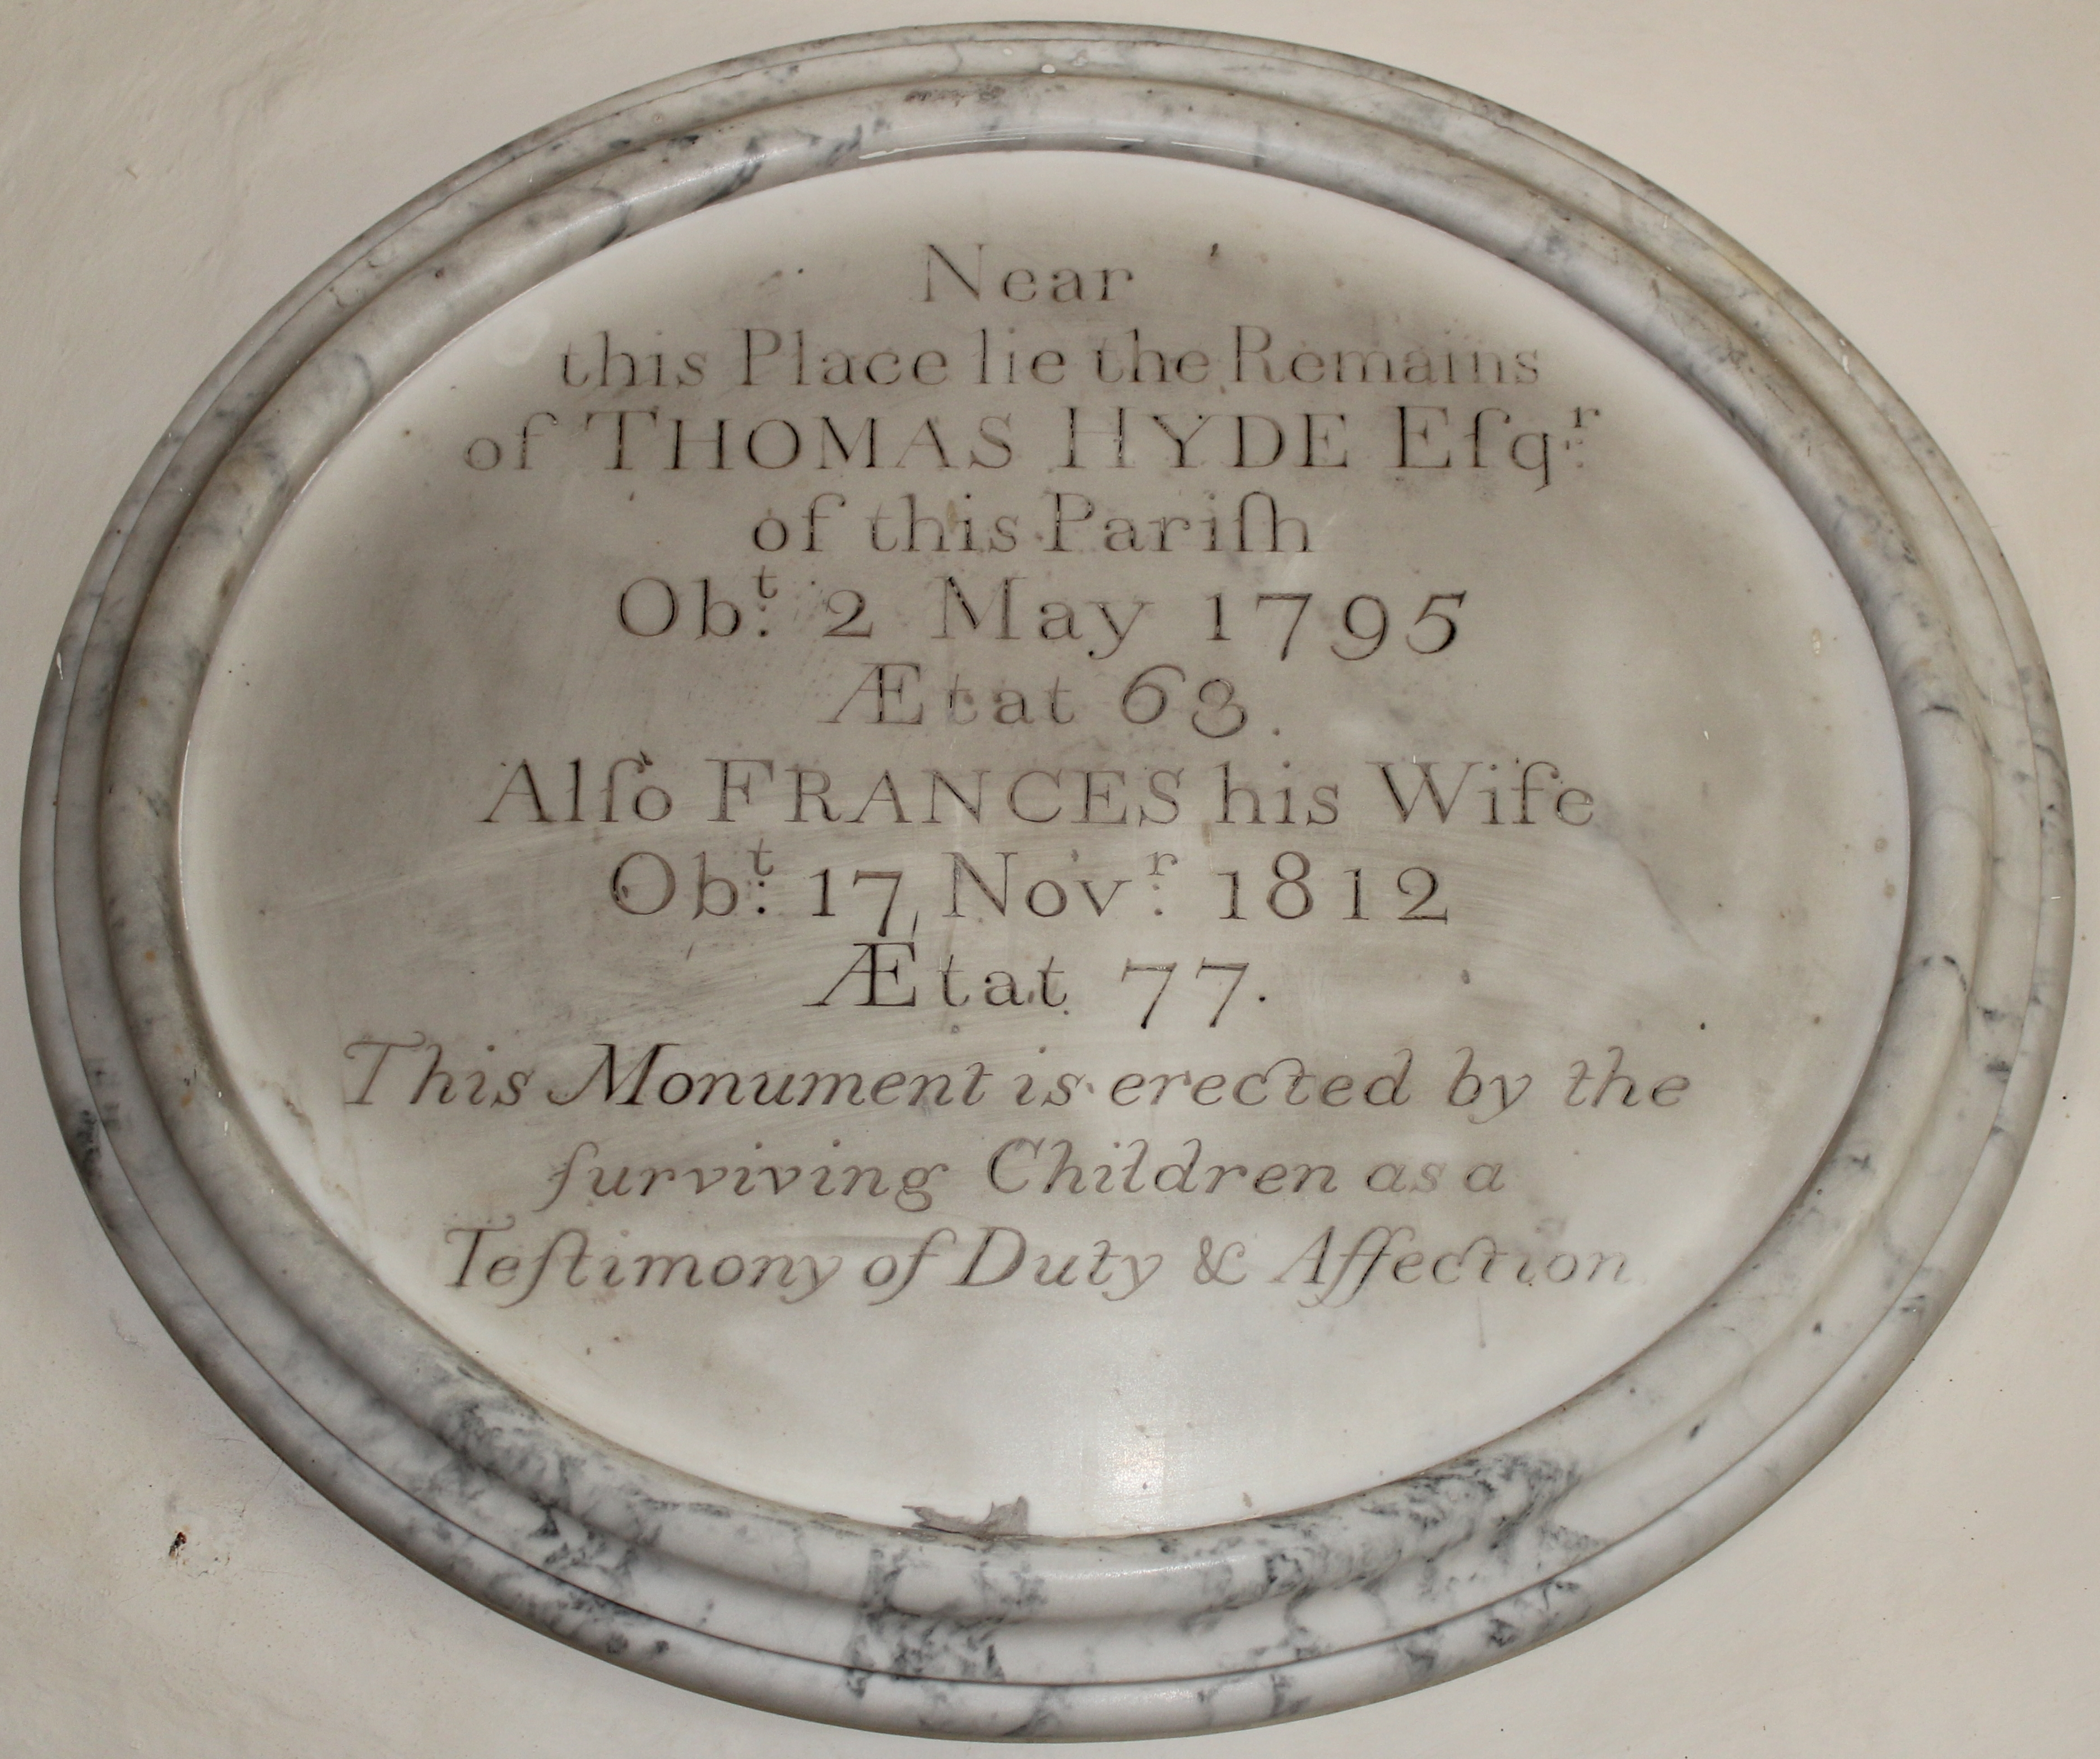 A memorial plaque to Thomas Hyde and his wife Frances can be found in the Church of St. Nicholas in Arne.